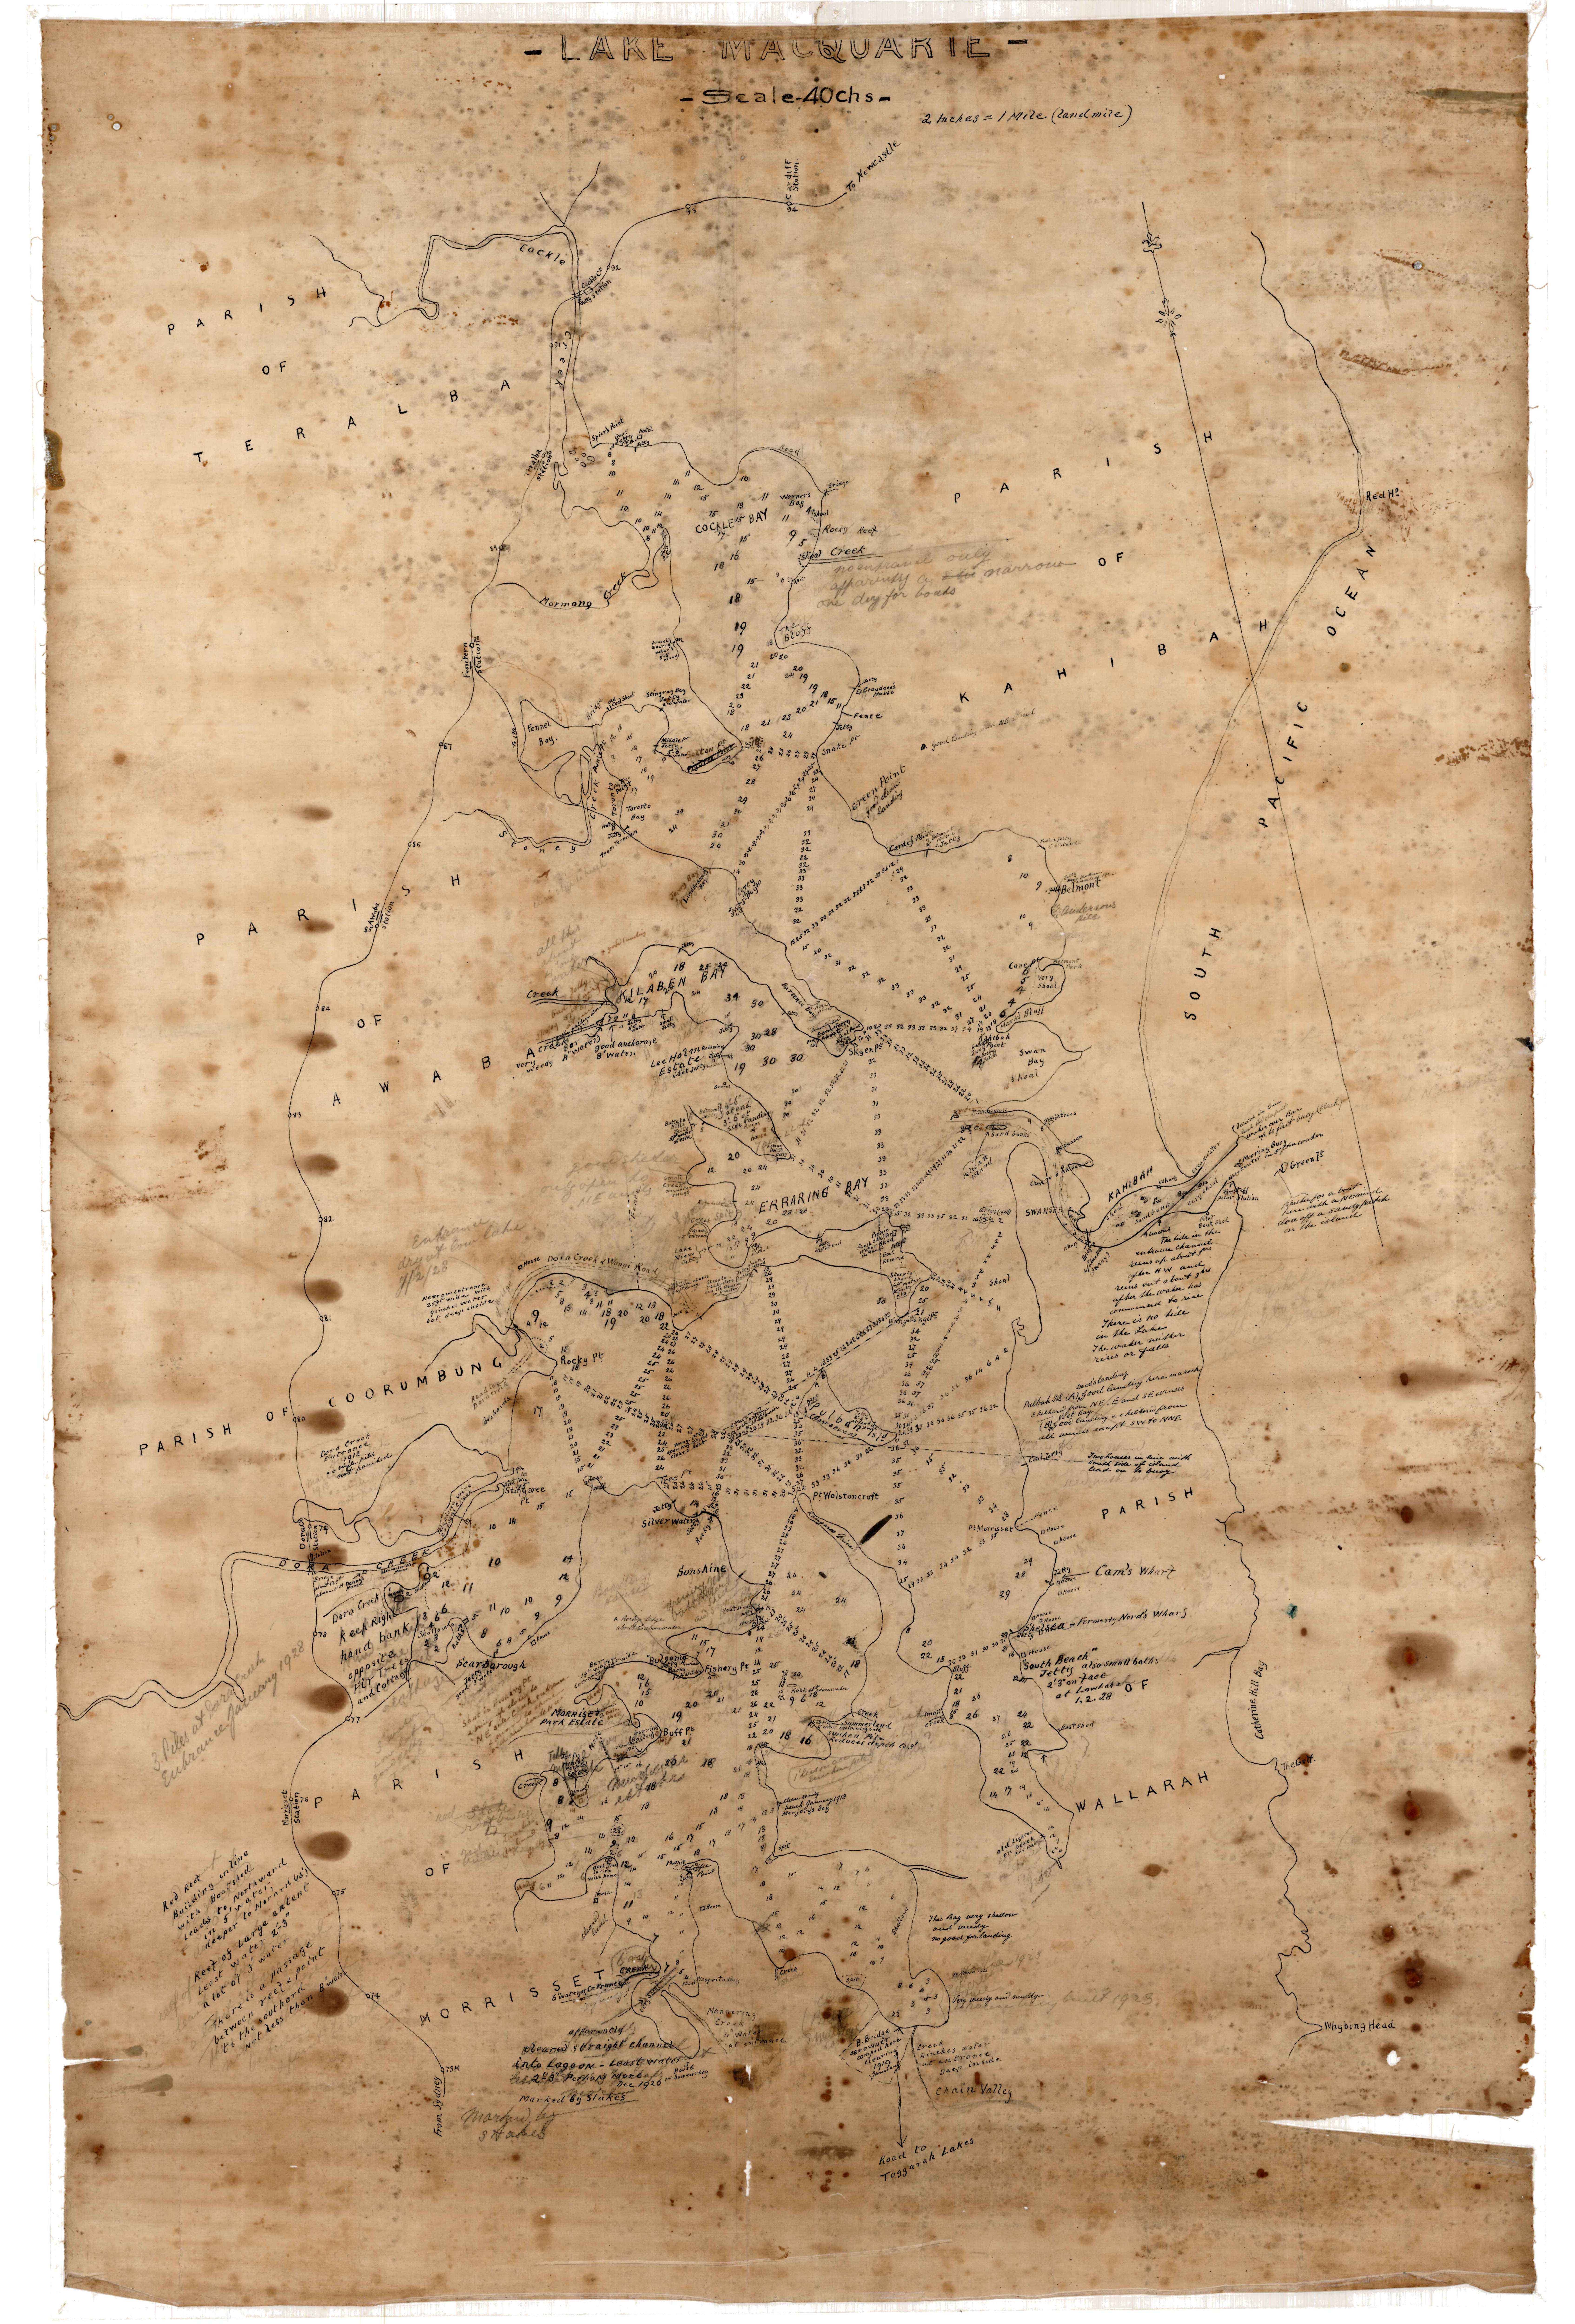 Captain Ernest Snowden Deed - Map of Lake Macquarie 1907-1908. Courtesy of the Cultural Collections University of Newcastle (Australia)